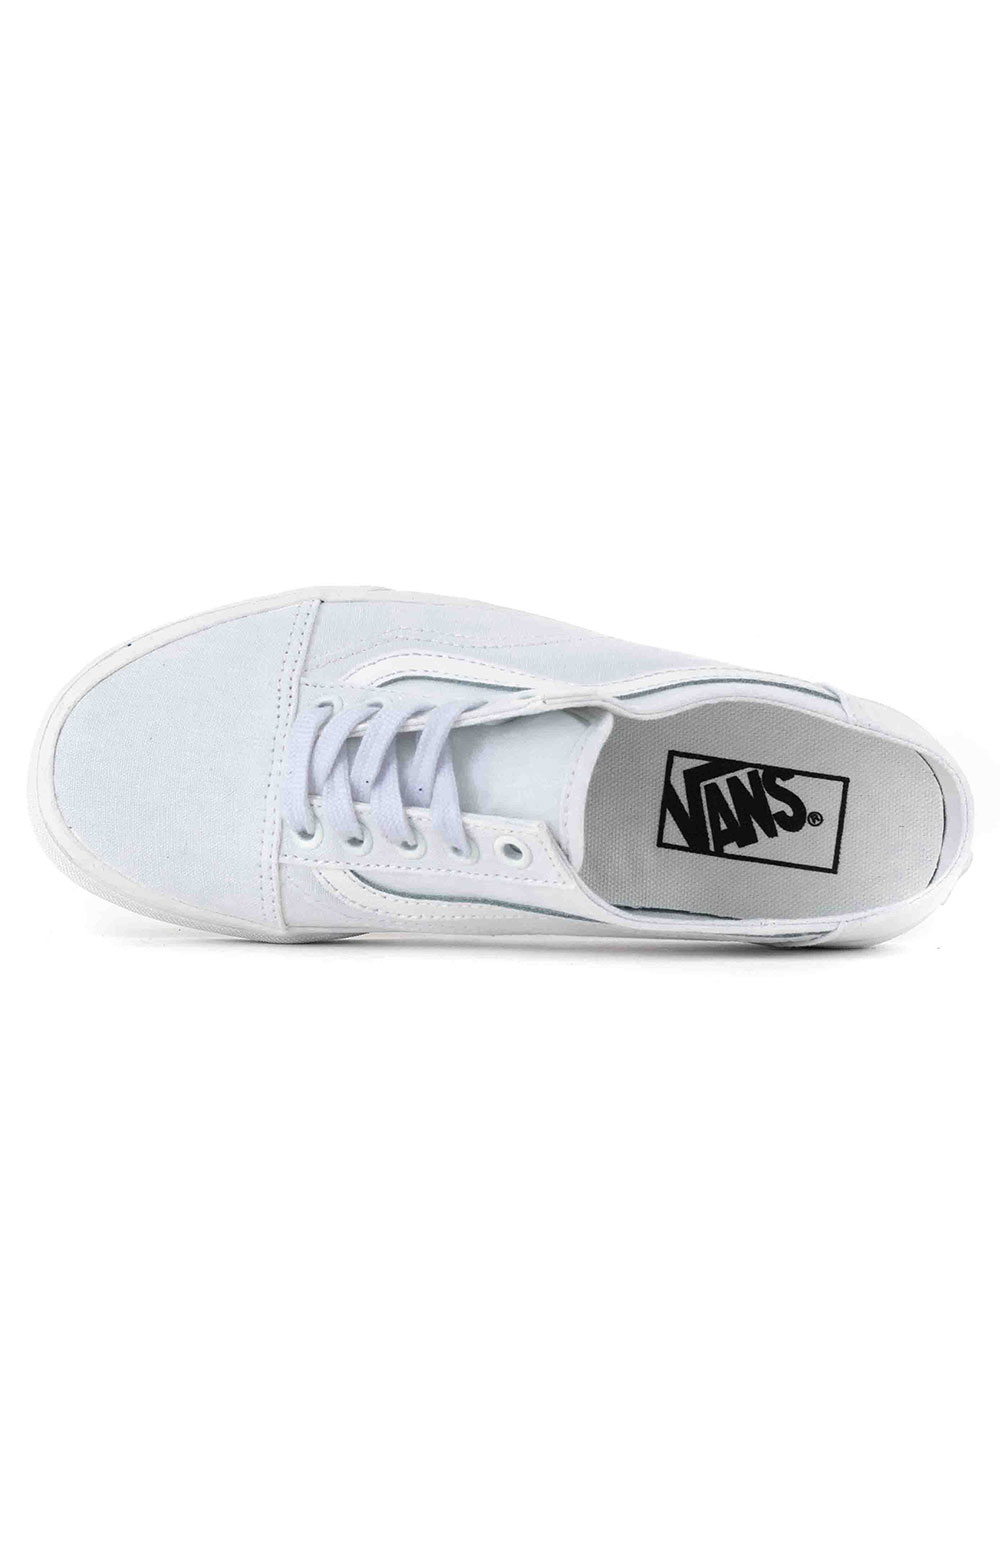 (P3YWC6) Old Skool Mule Shoe - White/True White 2